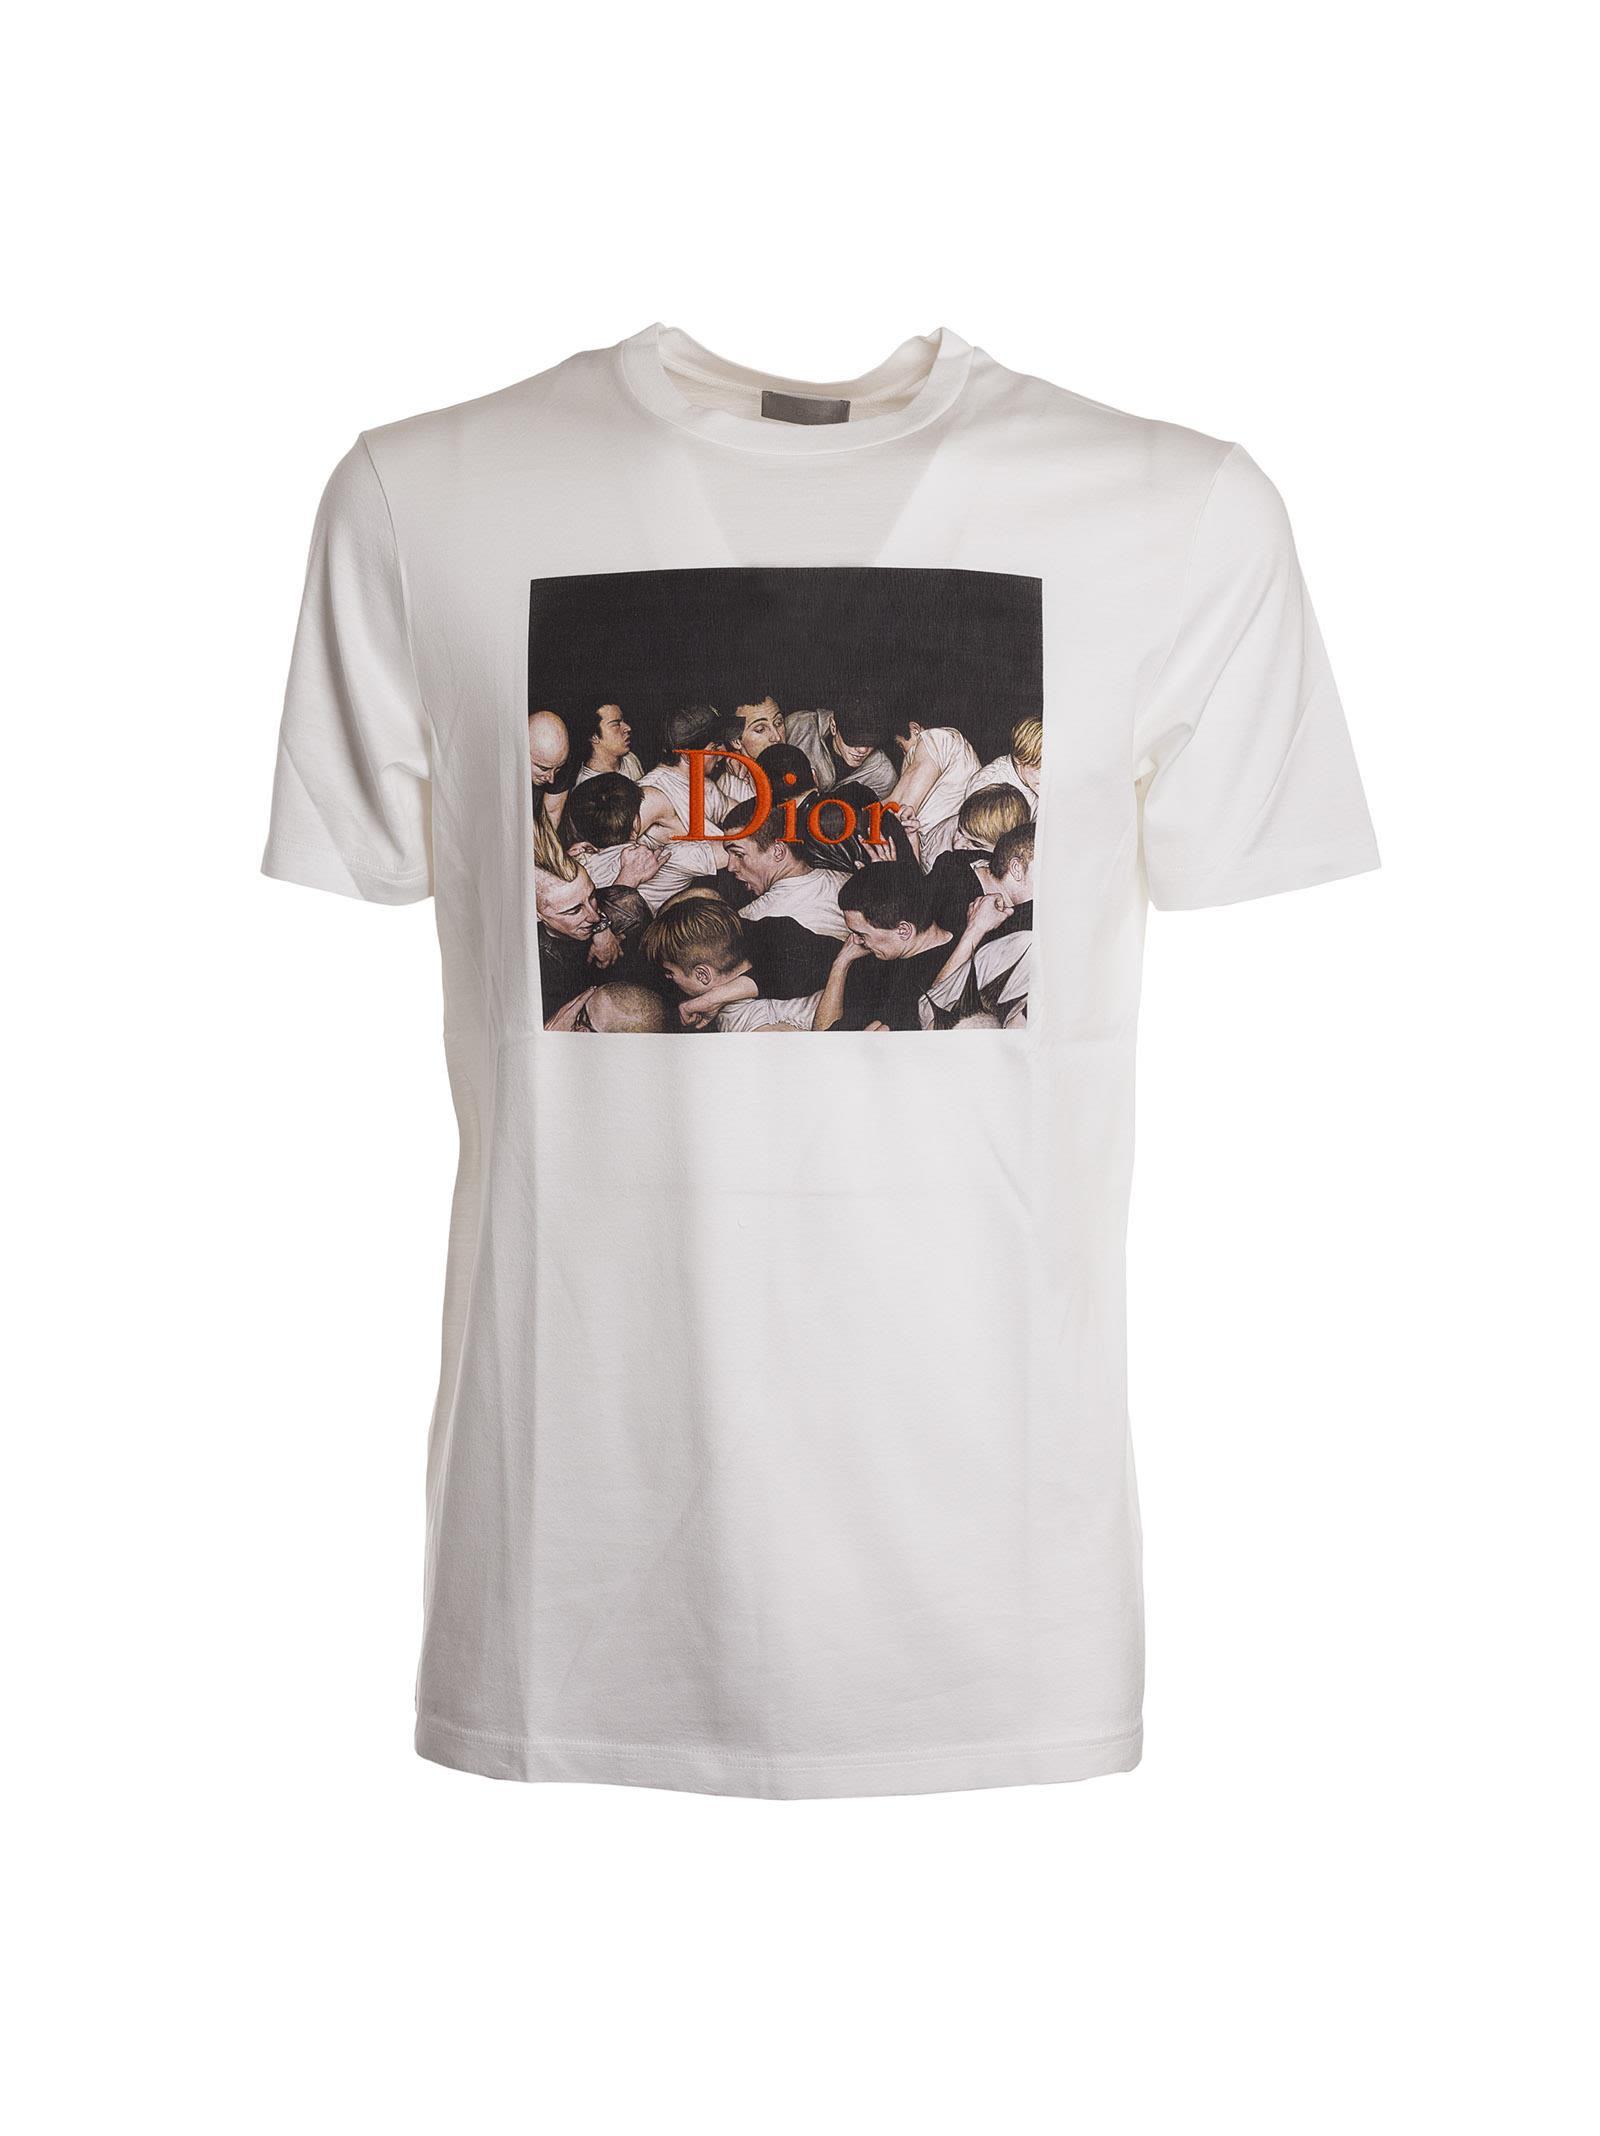 6d5ebf07 Dior Homme Dan Witz Print Embroidered T-Shirt In White   ModeSens